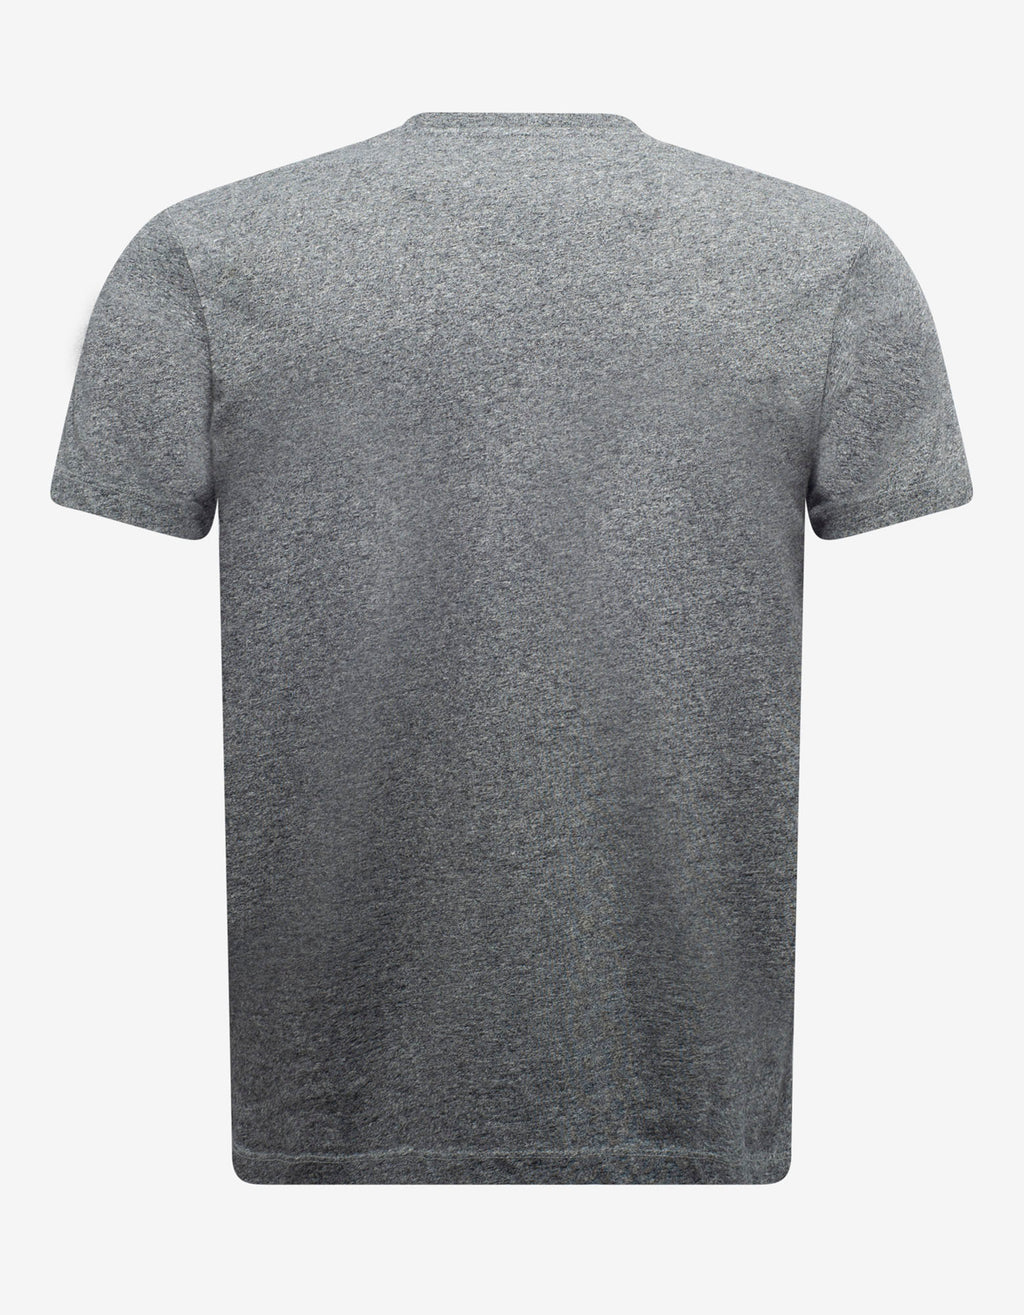 Grey Tiger Print T-Shirt